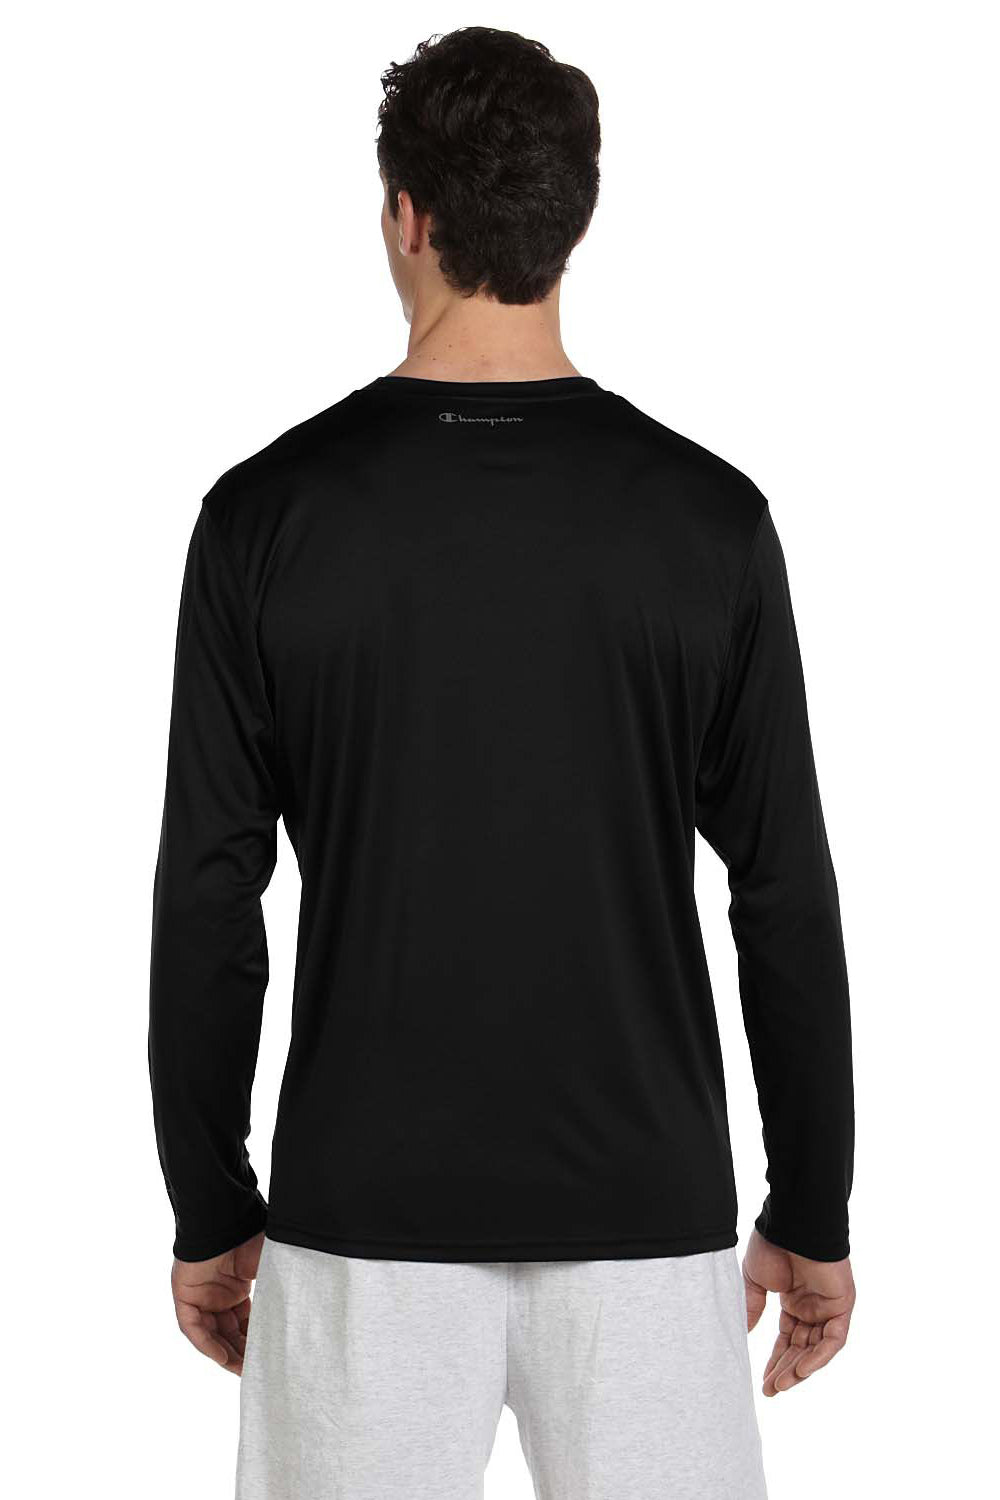 Champion Double Dry Performance Long Sleeve Shirt Mens Athletic Tee New CW26